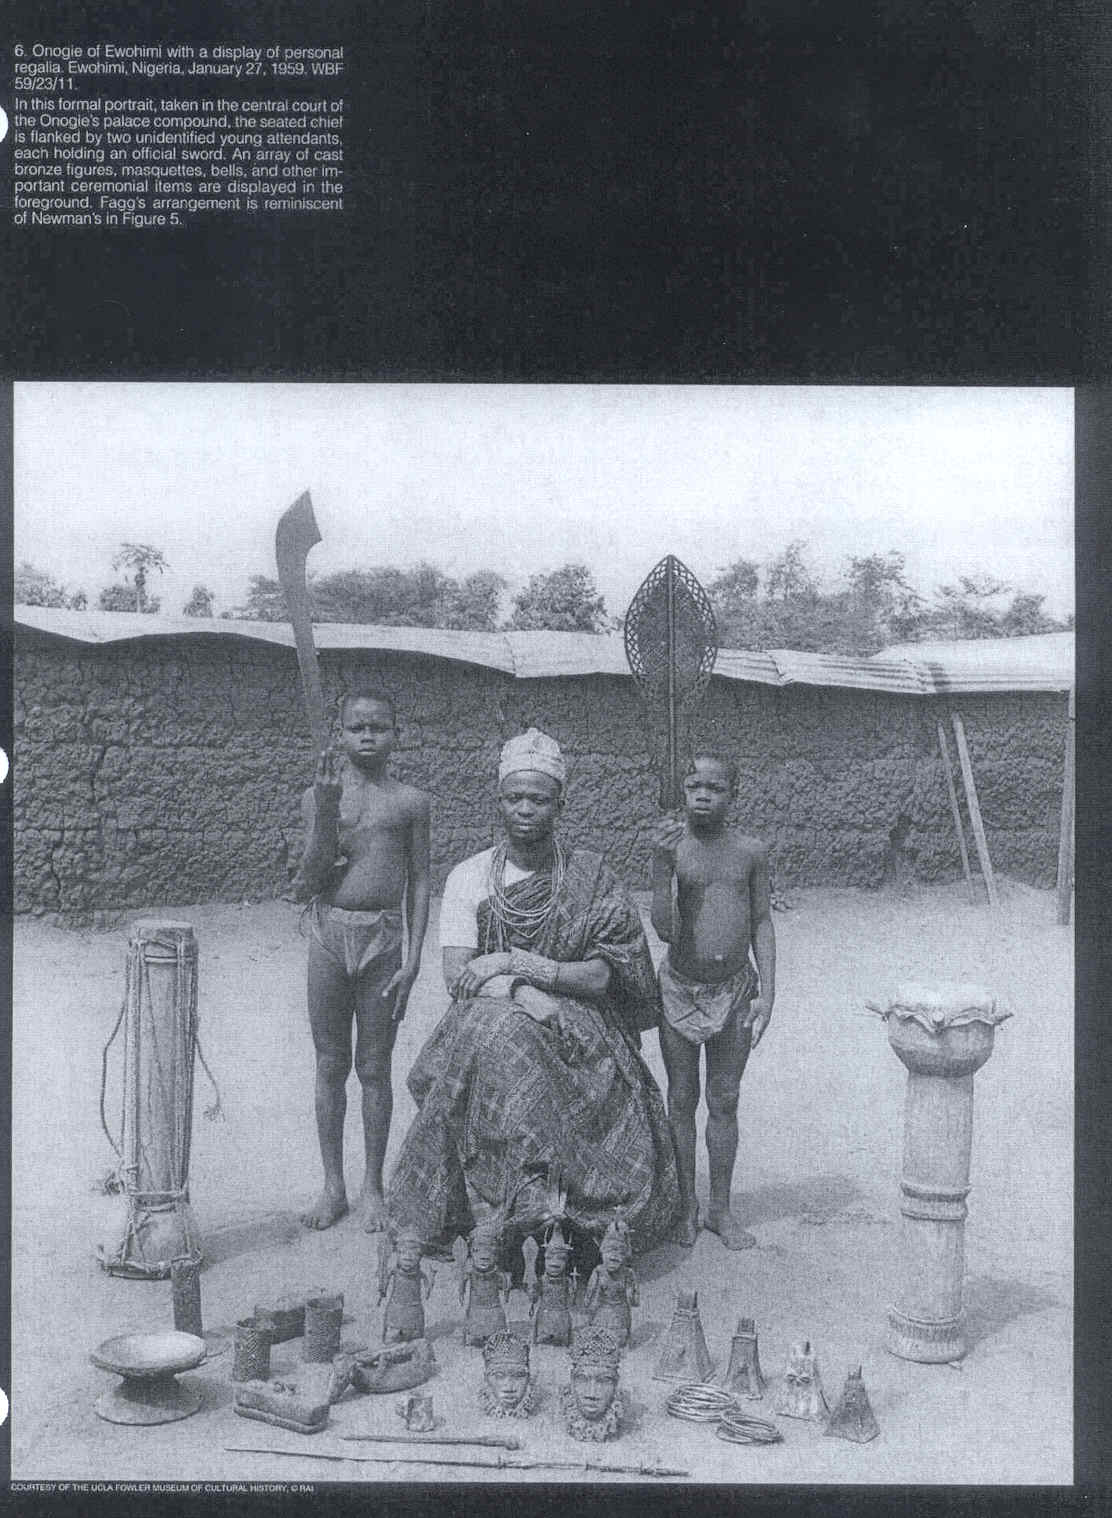 Documentary Observations 1 Esan (Ishan) People: Ancient Warriors, Highly Homogeneous And Vibrant Educated People In Edo State Of Nigeria